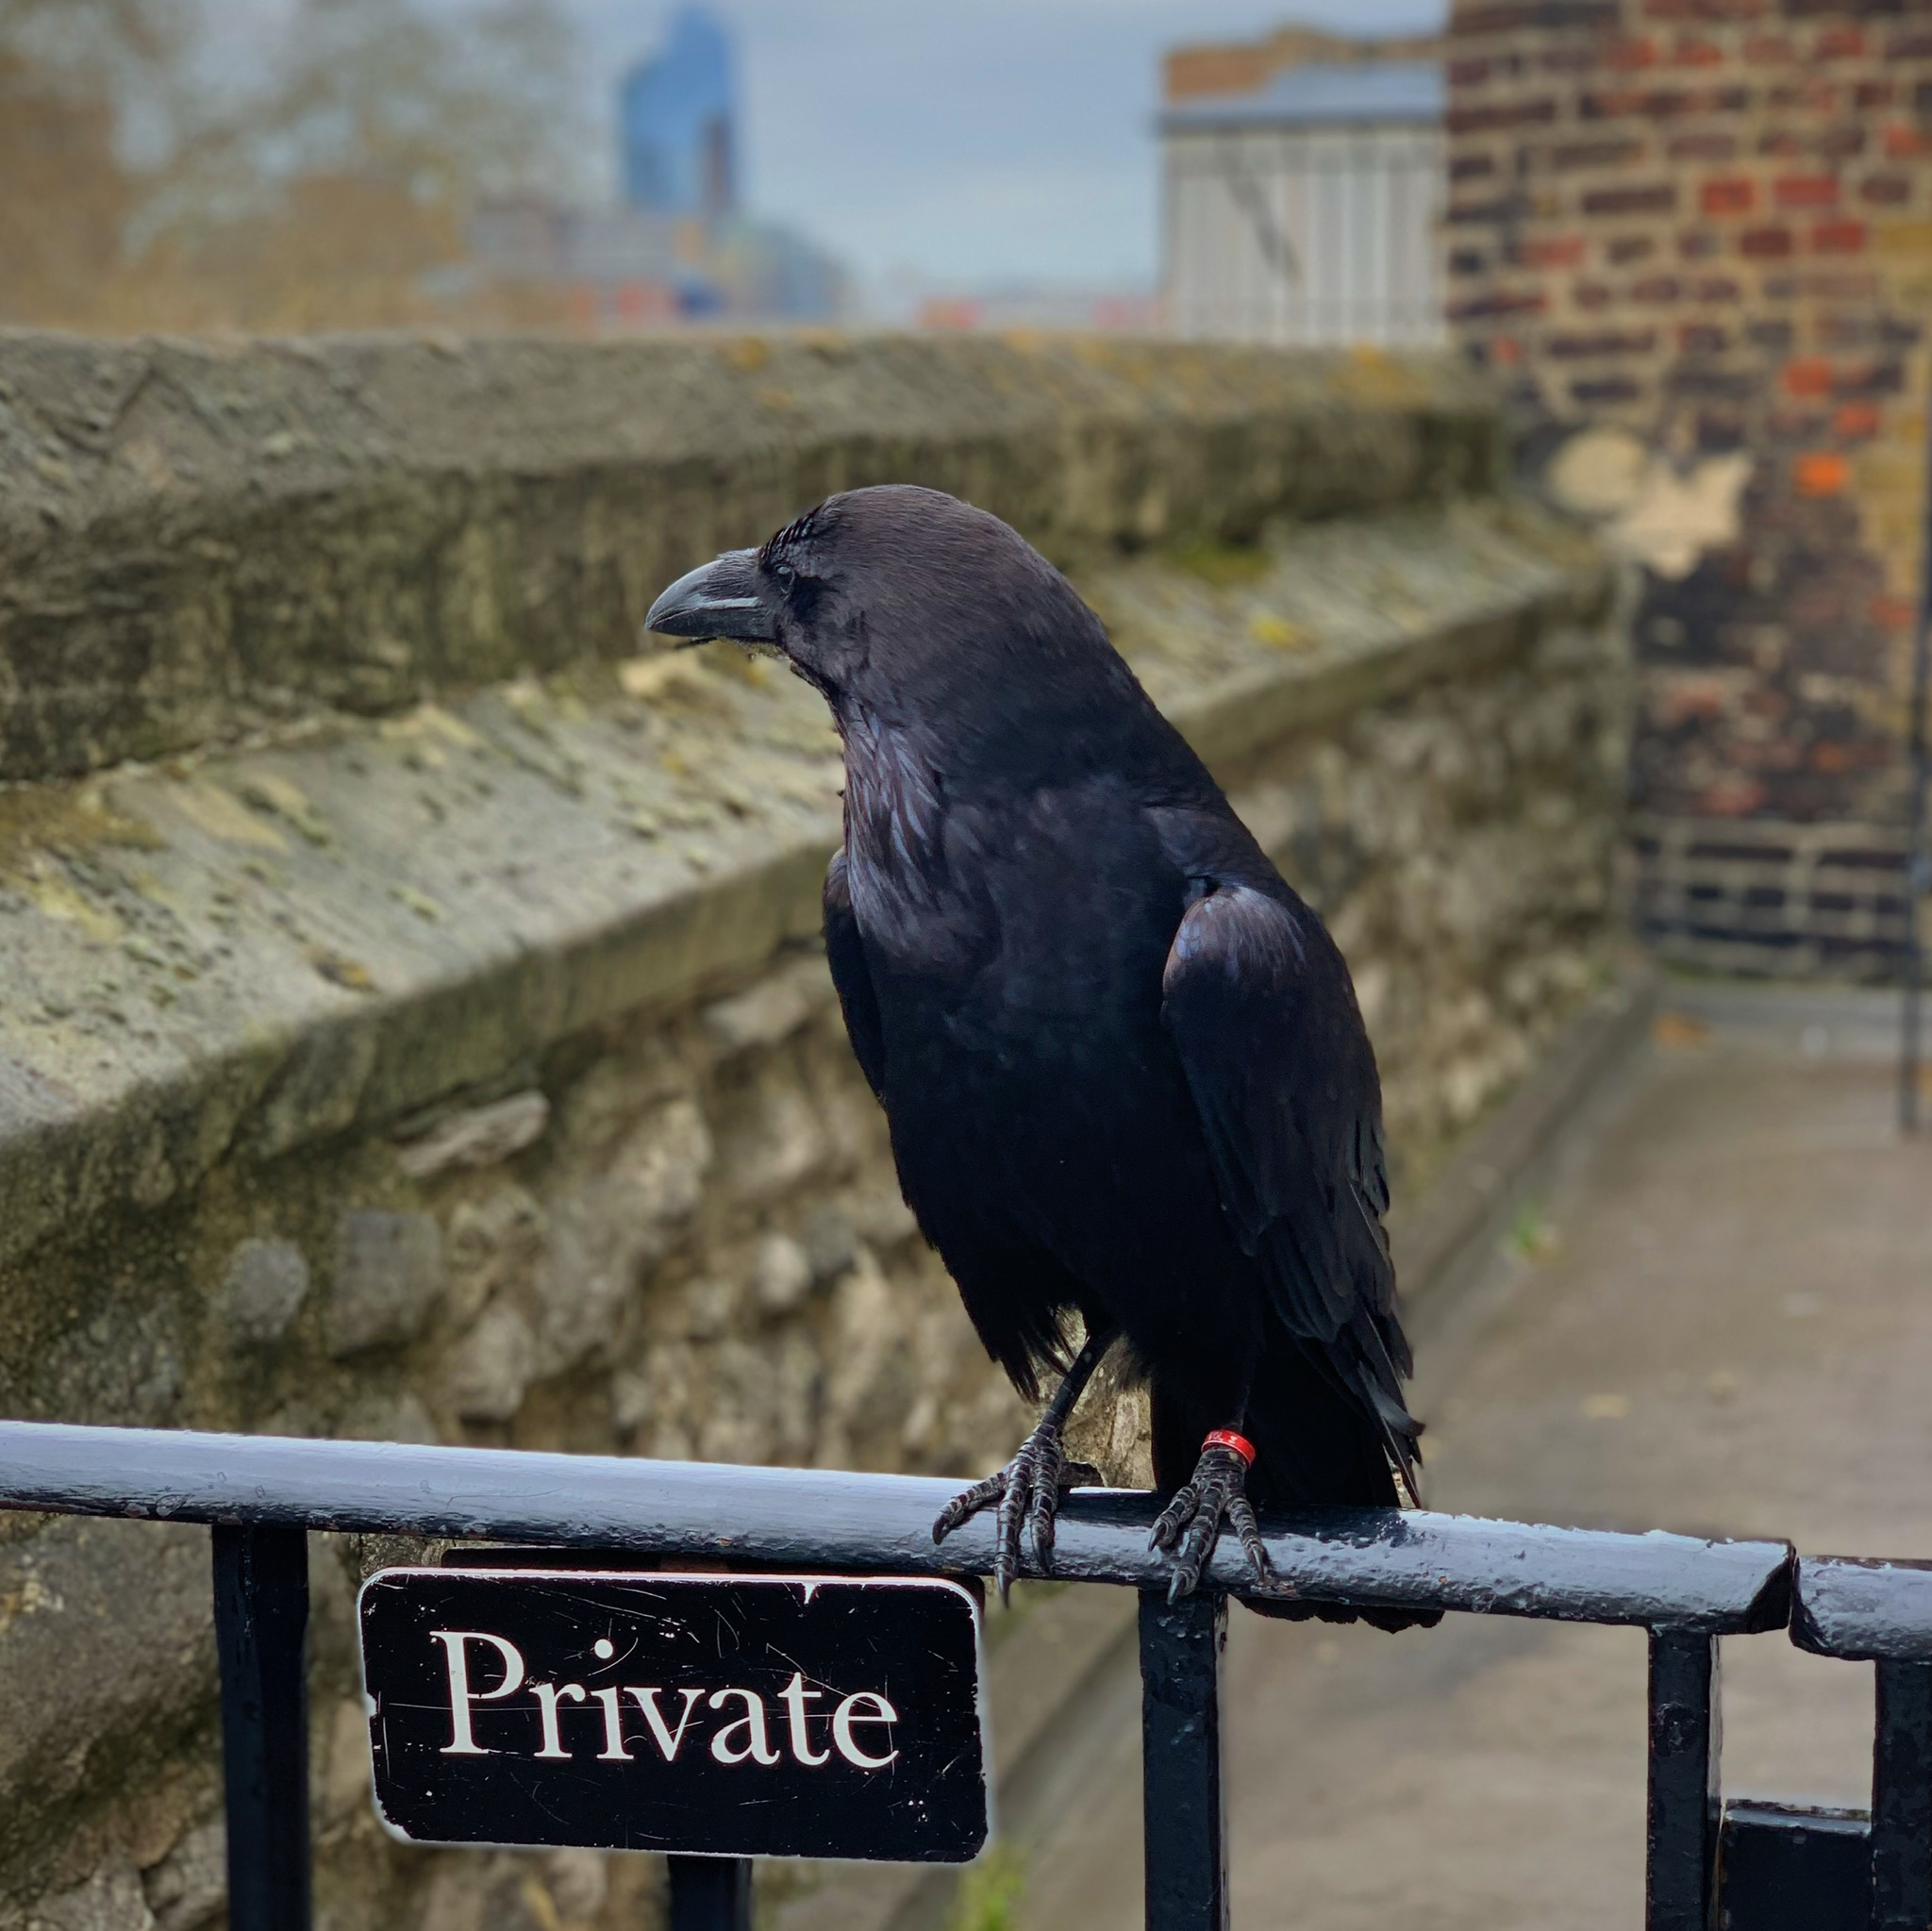 A permanent resident of the Tower of London